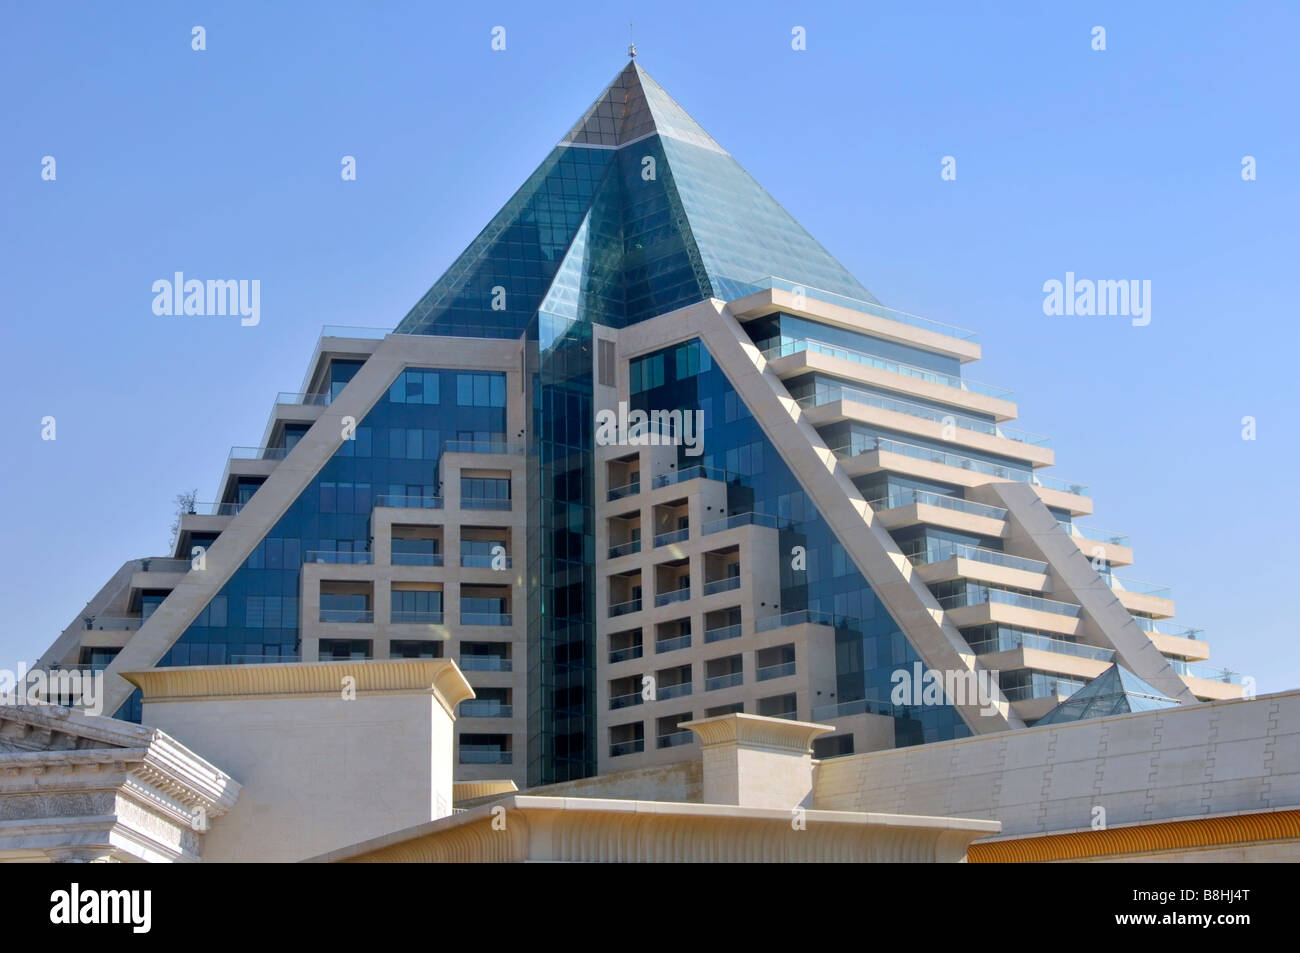 Dubai Modern Architecture Building Stock Photo 22515048 Alamy